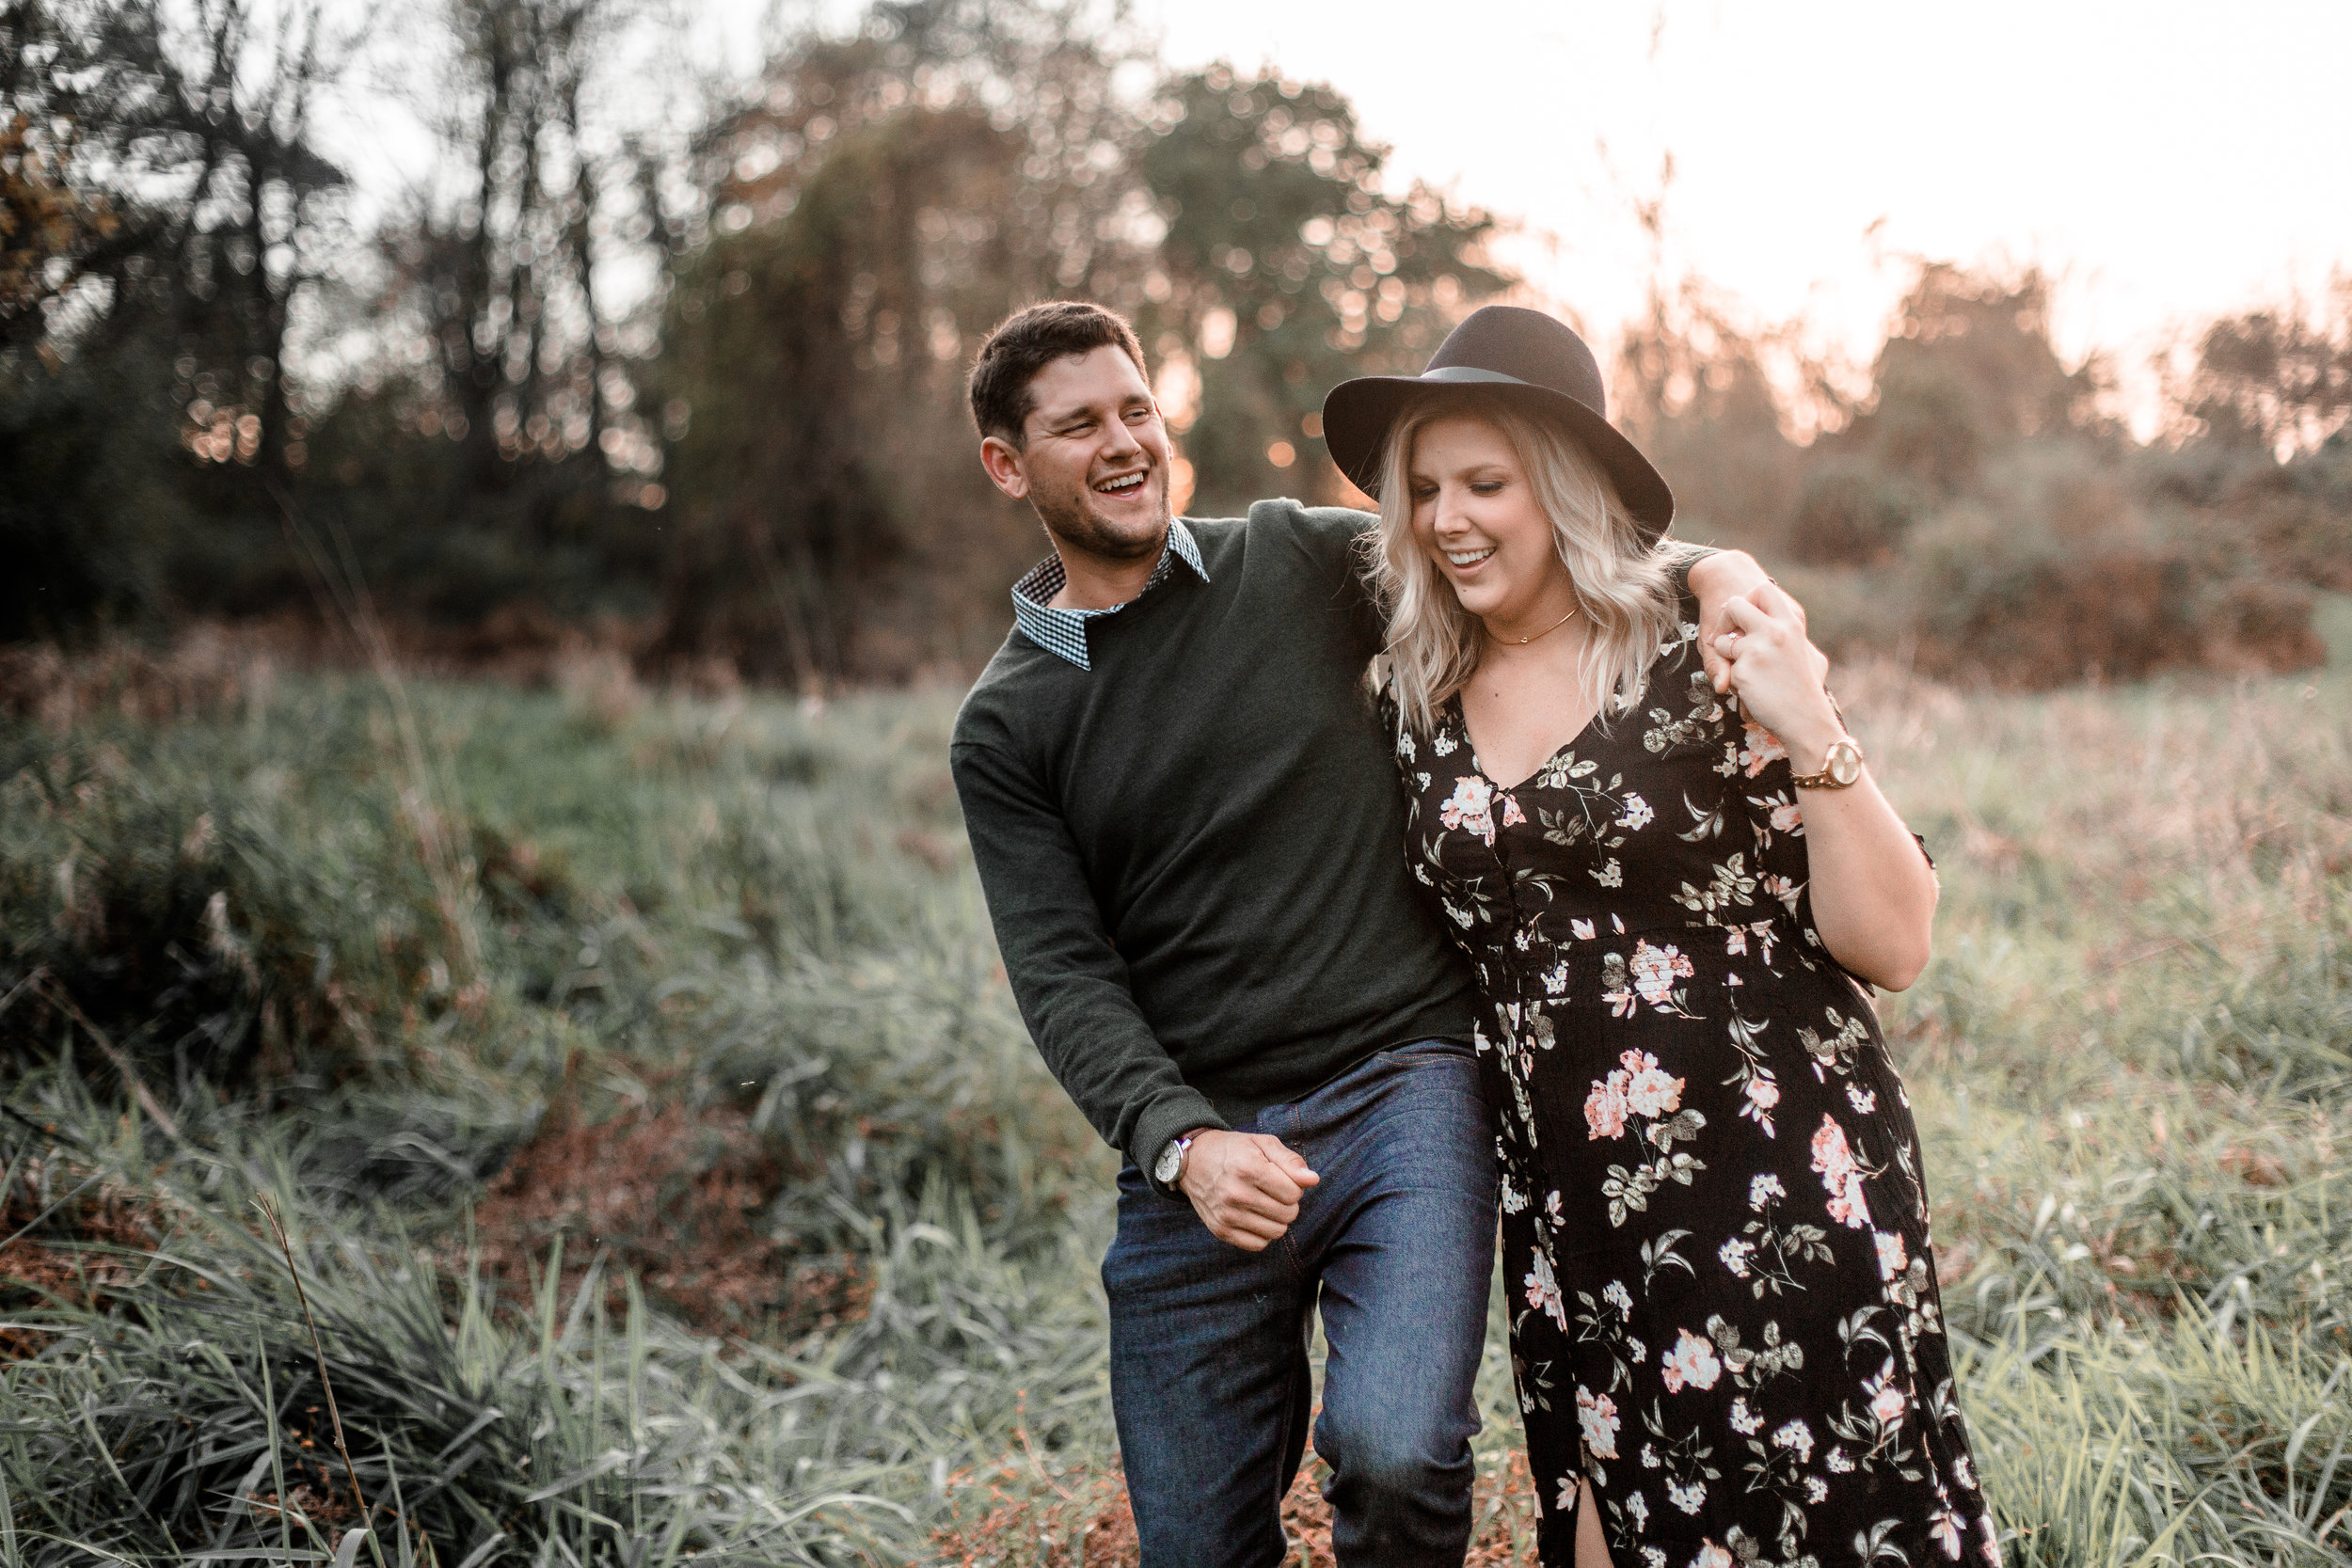 nicole-daacke-photography-carefree-bohemian-lancaster-pa-pennsylvania-engagement-photos-engagement-session-golden-sunset-adventure-session-in-lancaster-pa-lancaster-pa-outdoor-wedding-photographer-30.jpg